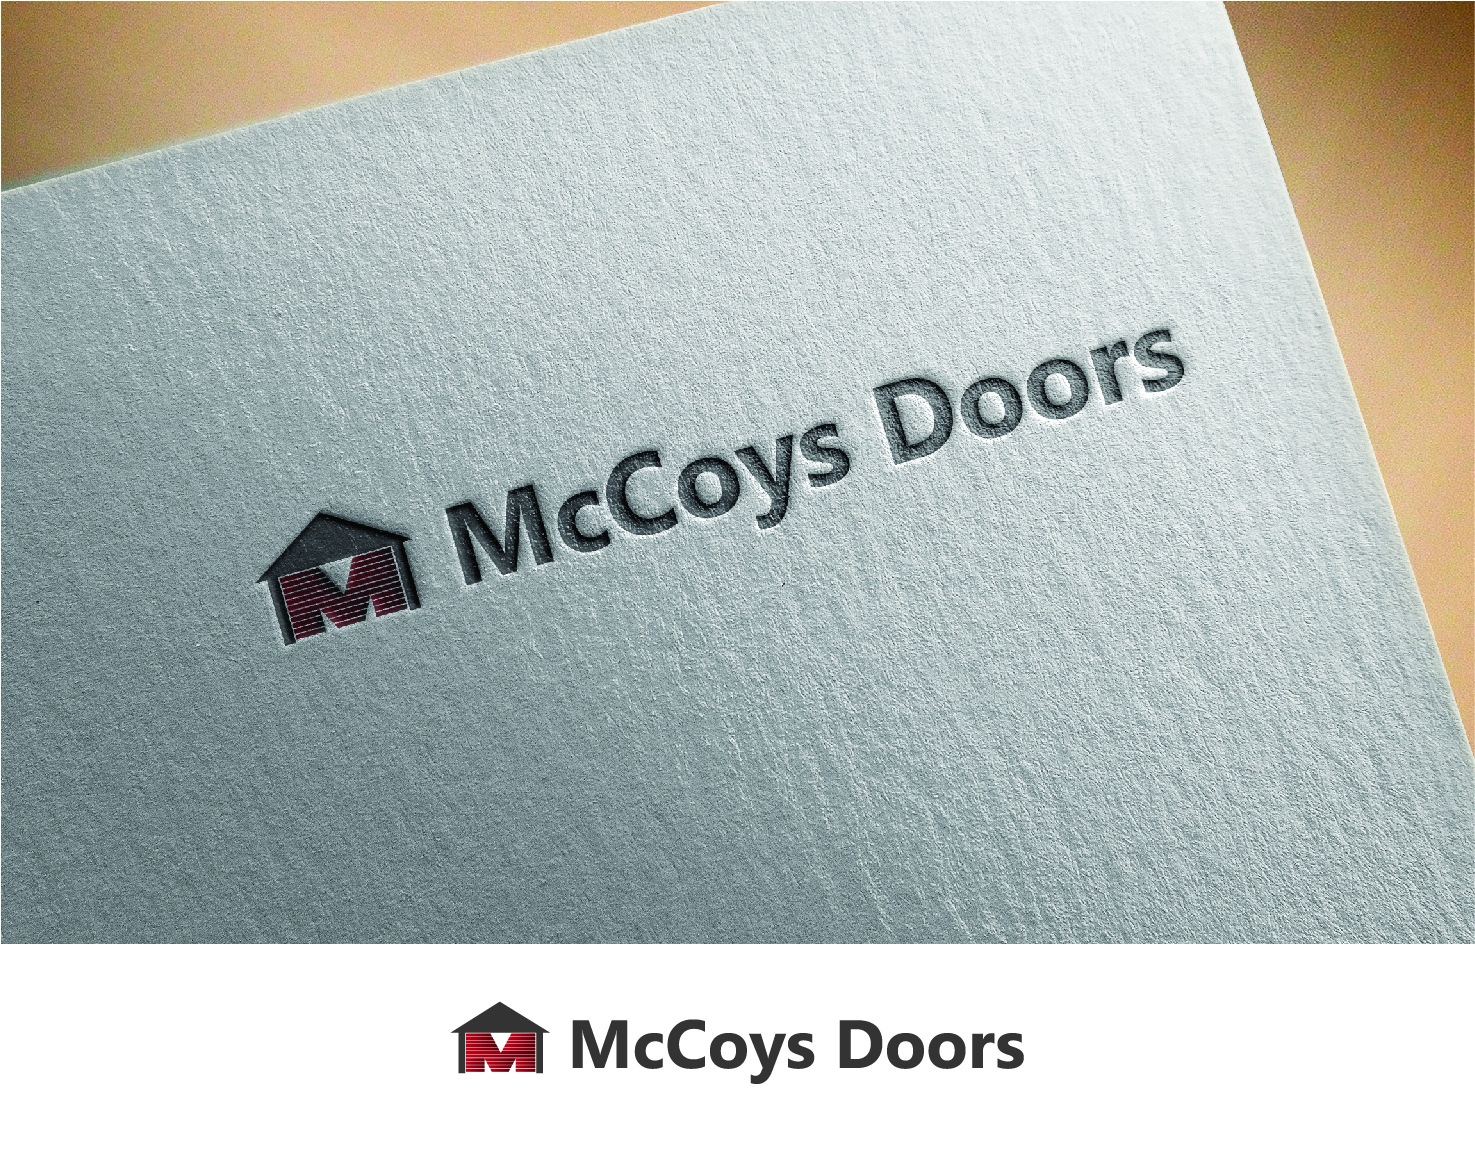 Logo Design by Fox In The Snow Design for Beans Direct | Design #8526114  sc 1 st  DesignCrowd & Serious Modern Garage Logo Design for McCoyu0027s Doors by Fox In The ...